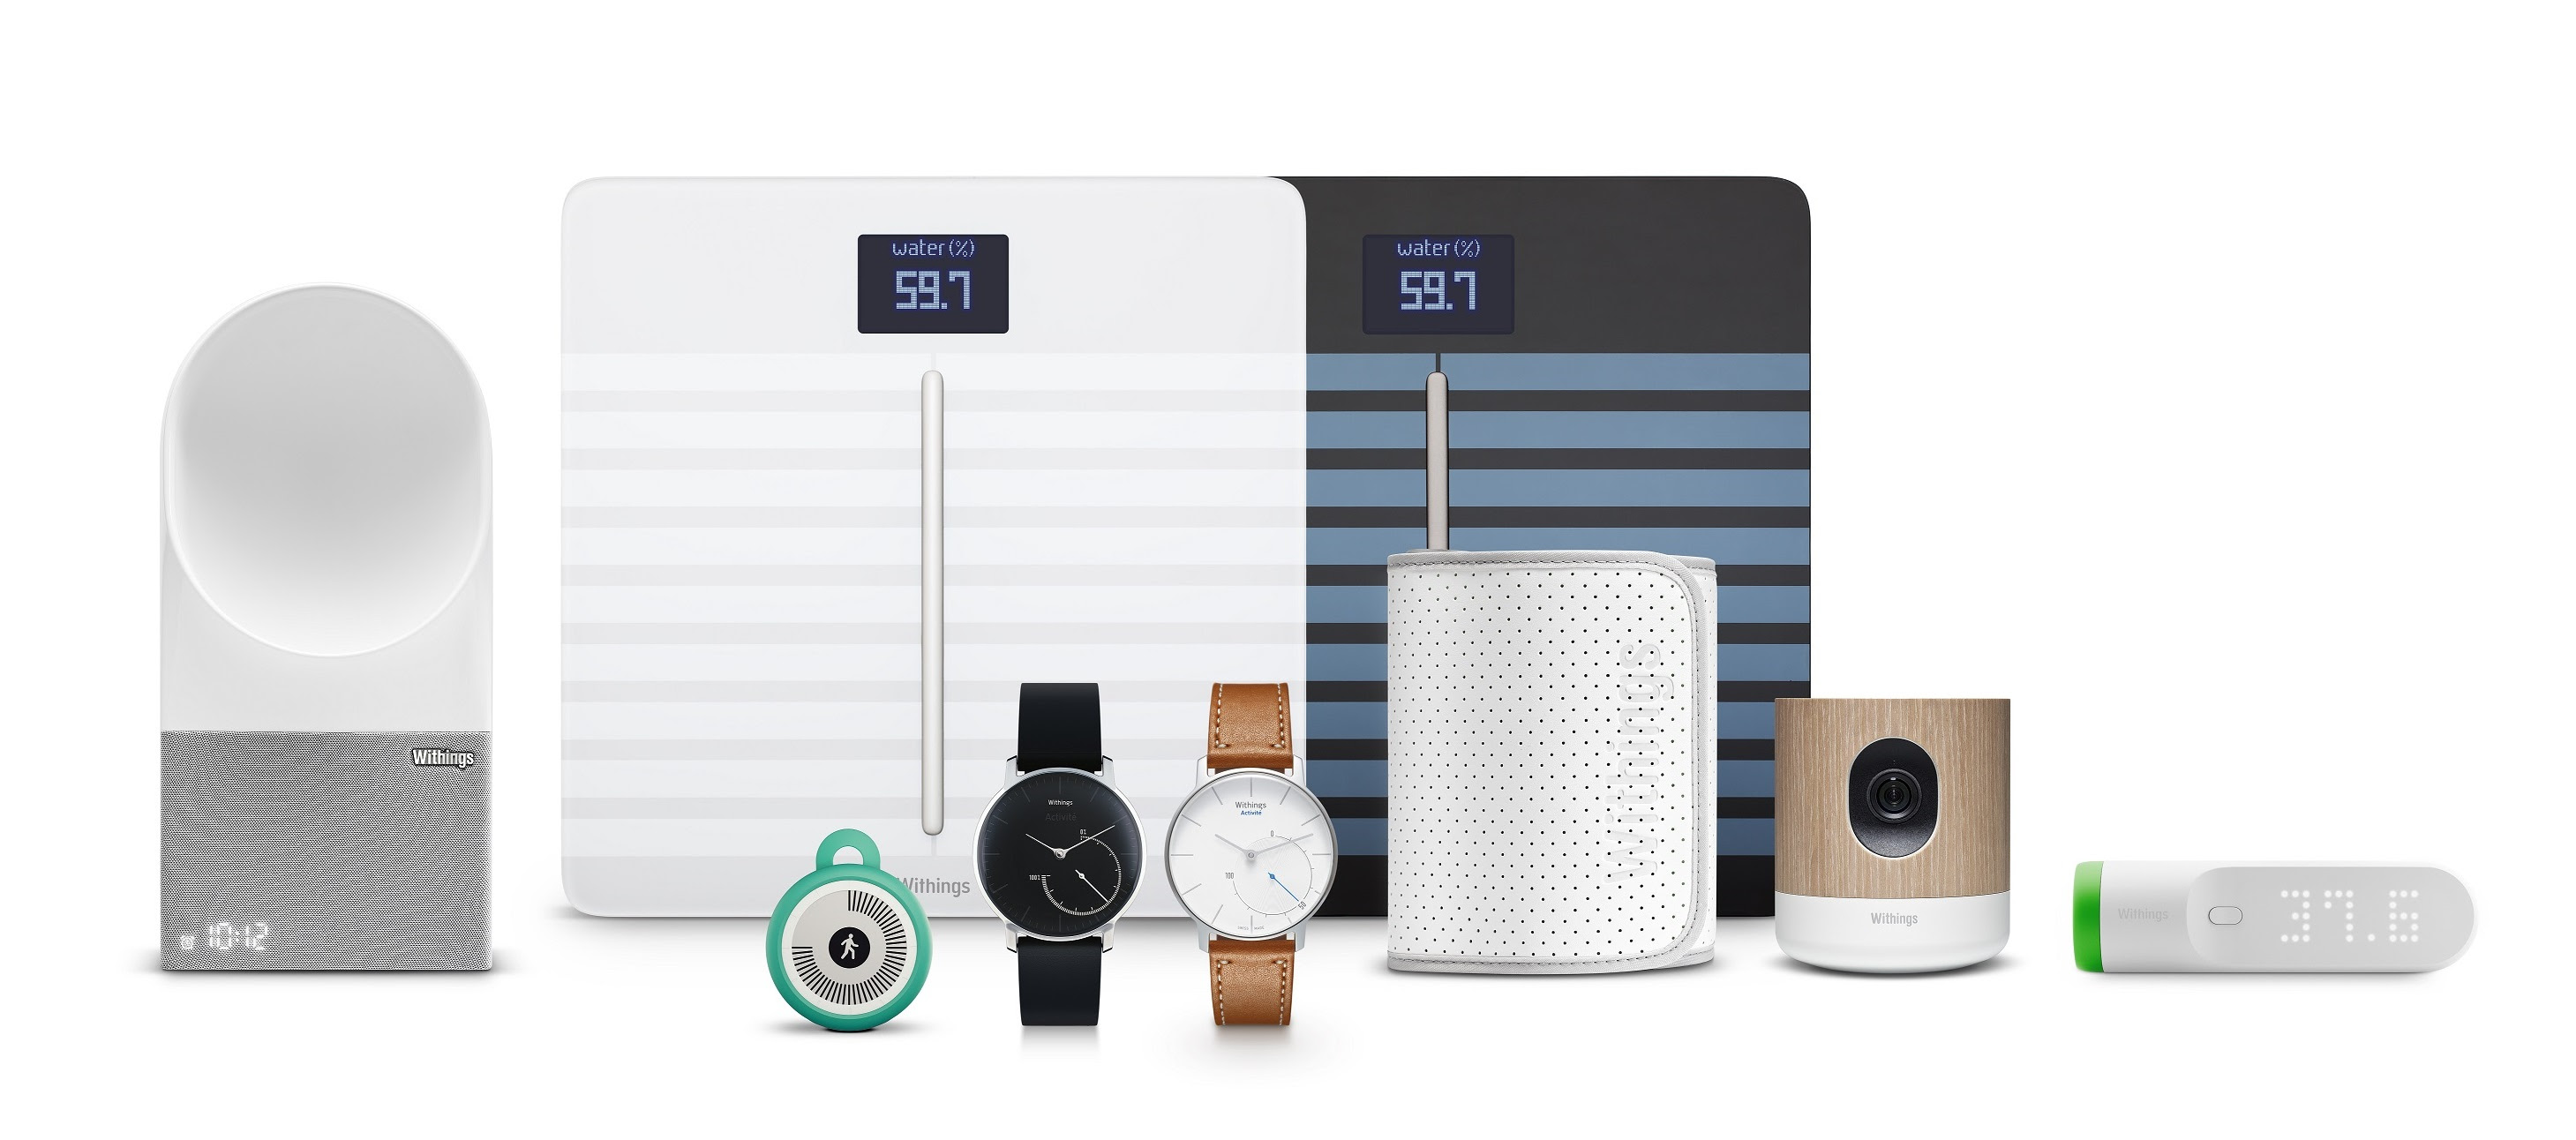 nokia-health-google-nest-iot